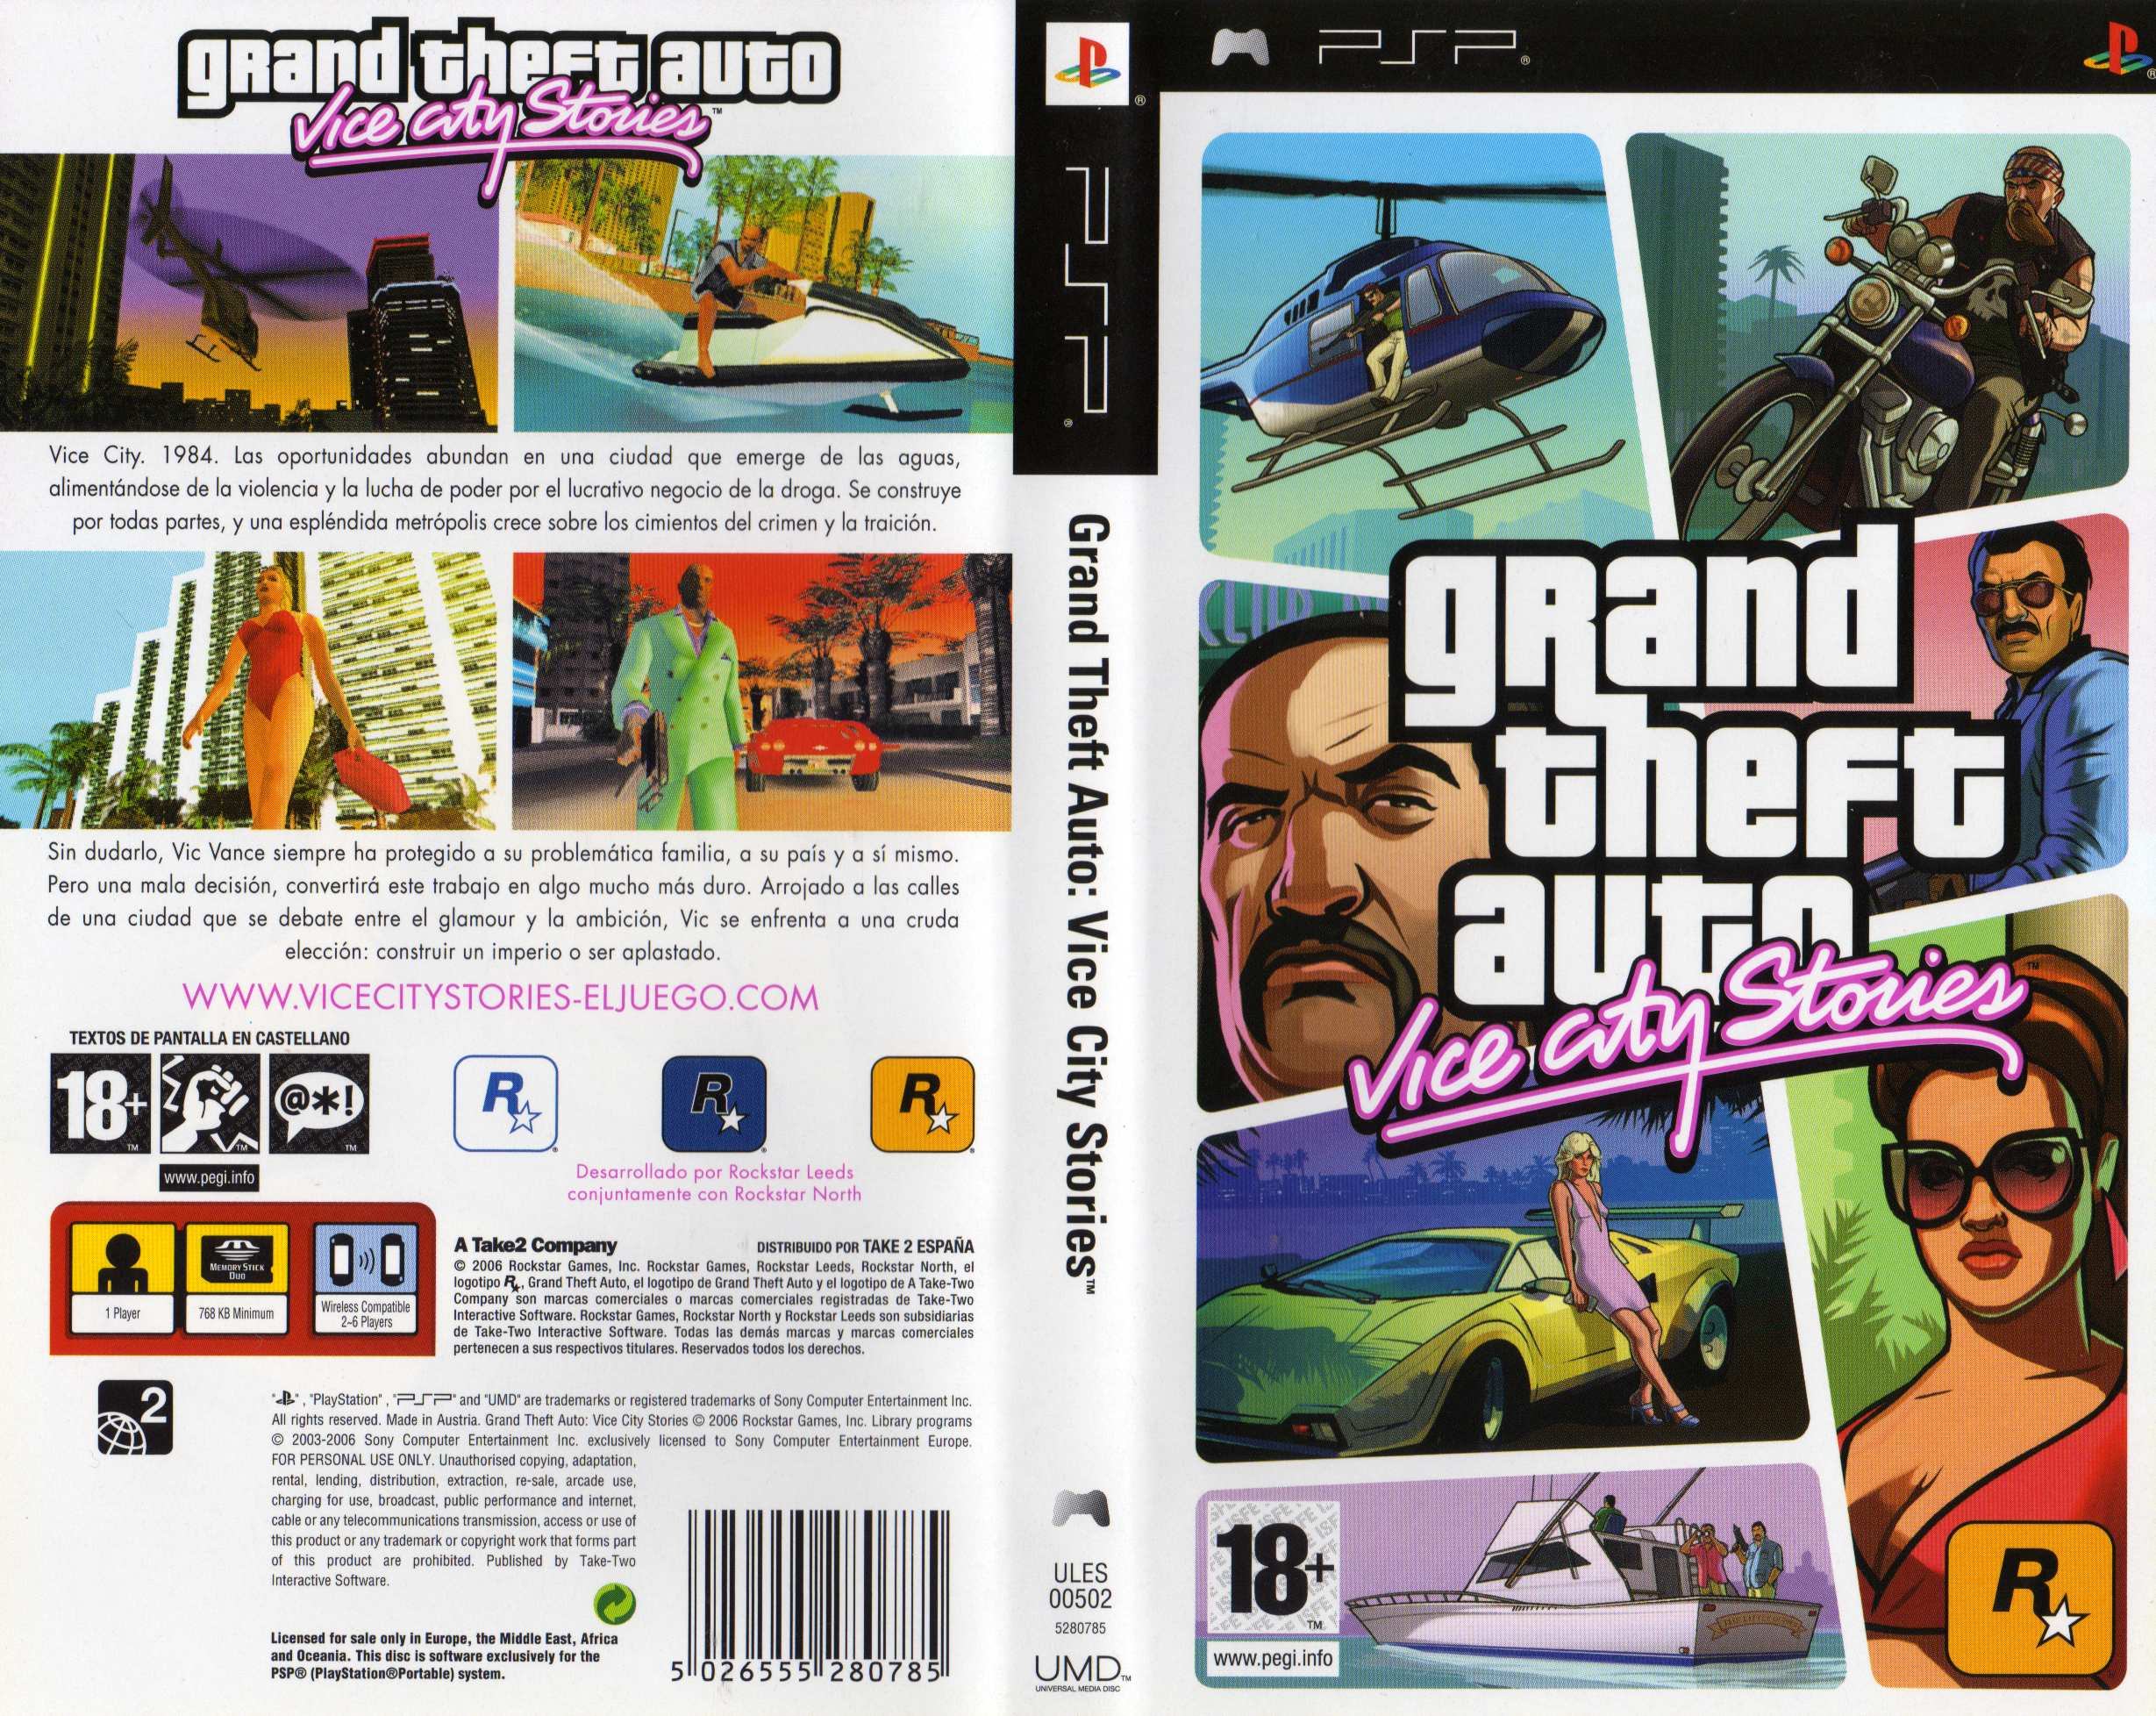 Grand theft auto vice city stories completa psp